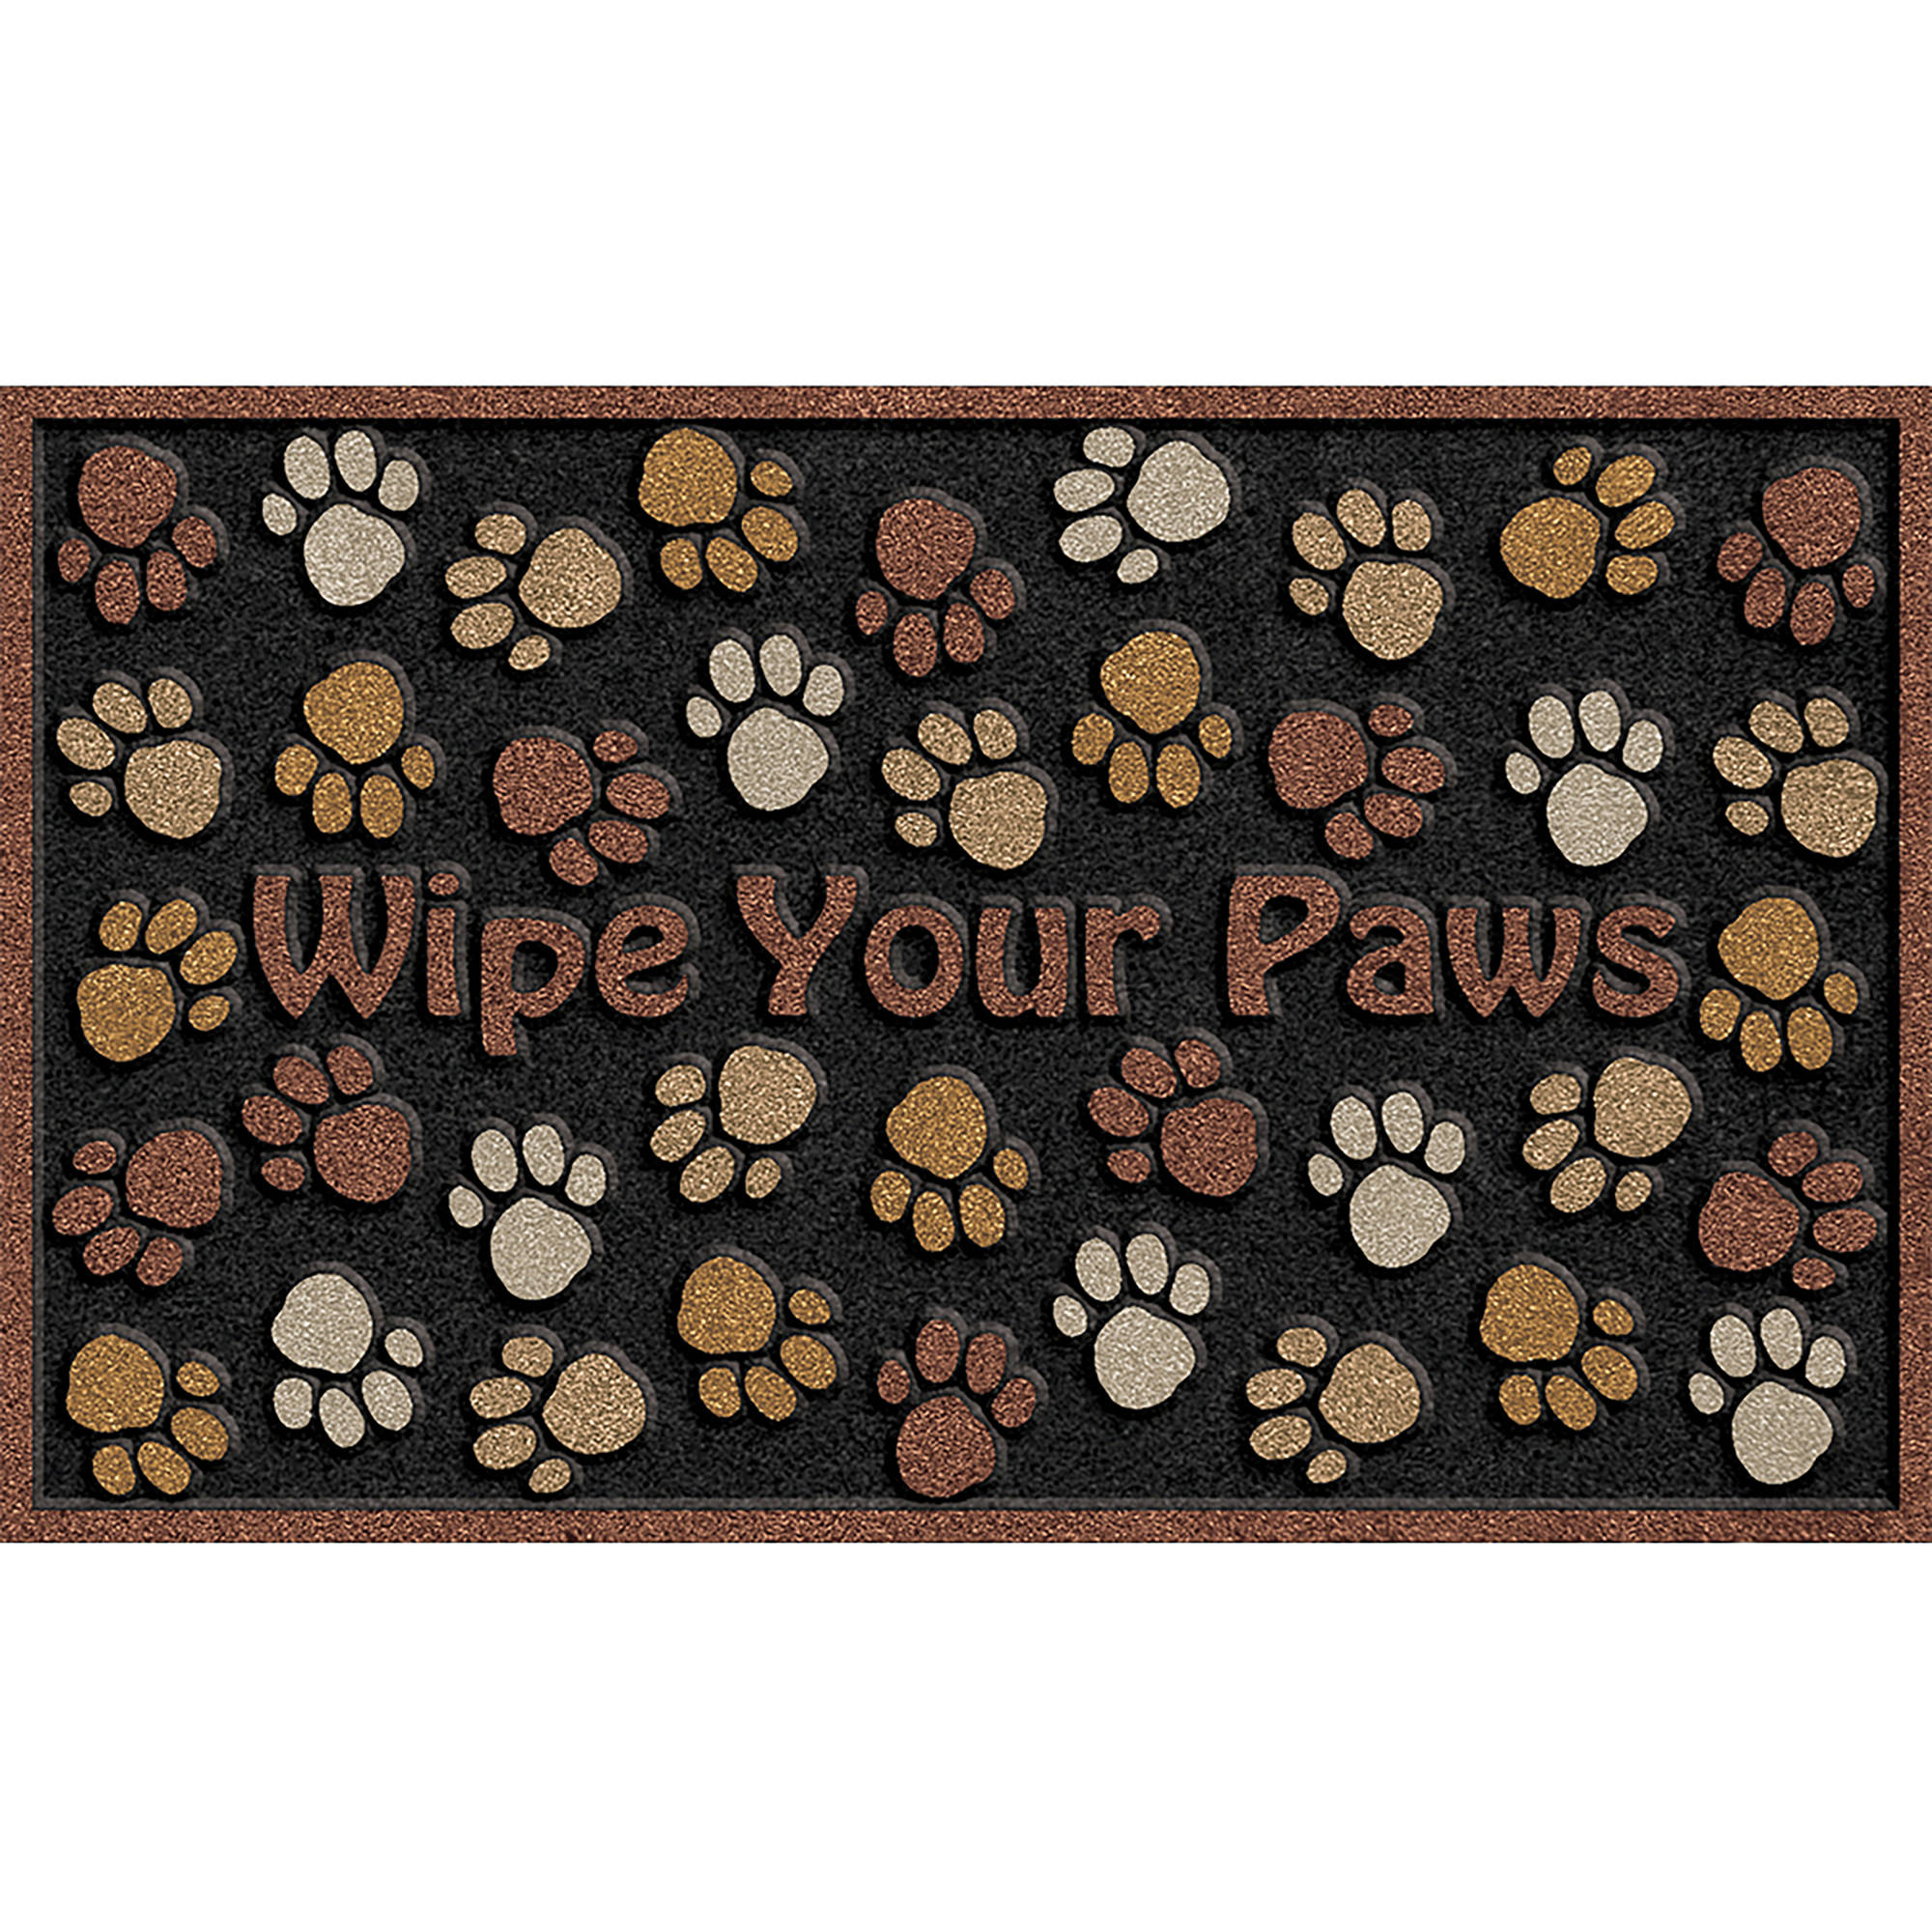 kitchen floor mats walmart Wipe Your Paws 18 30 Brown